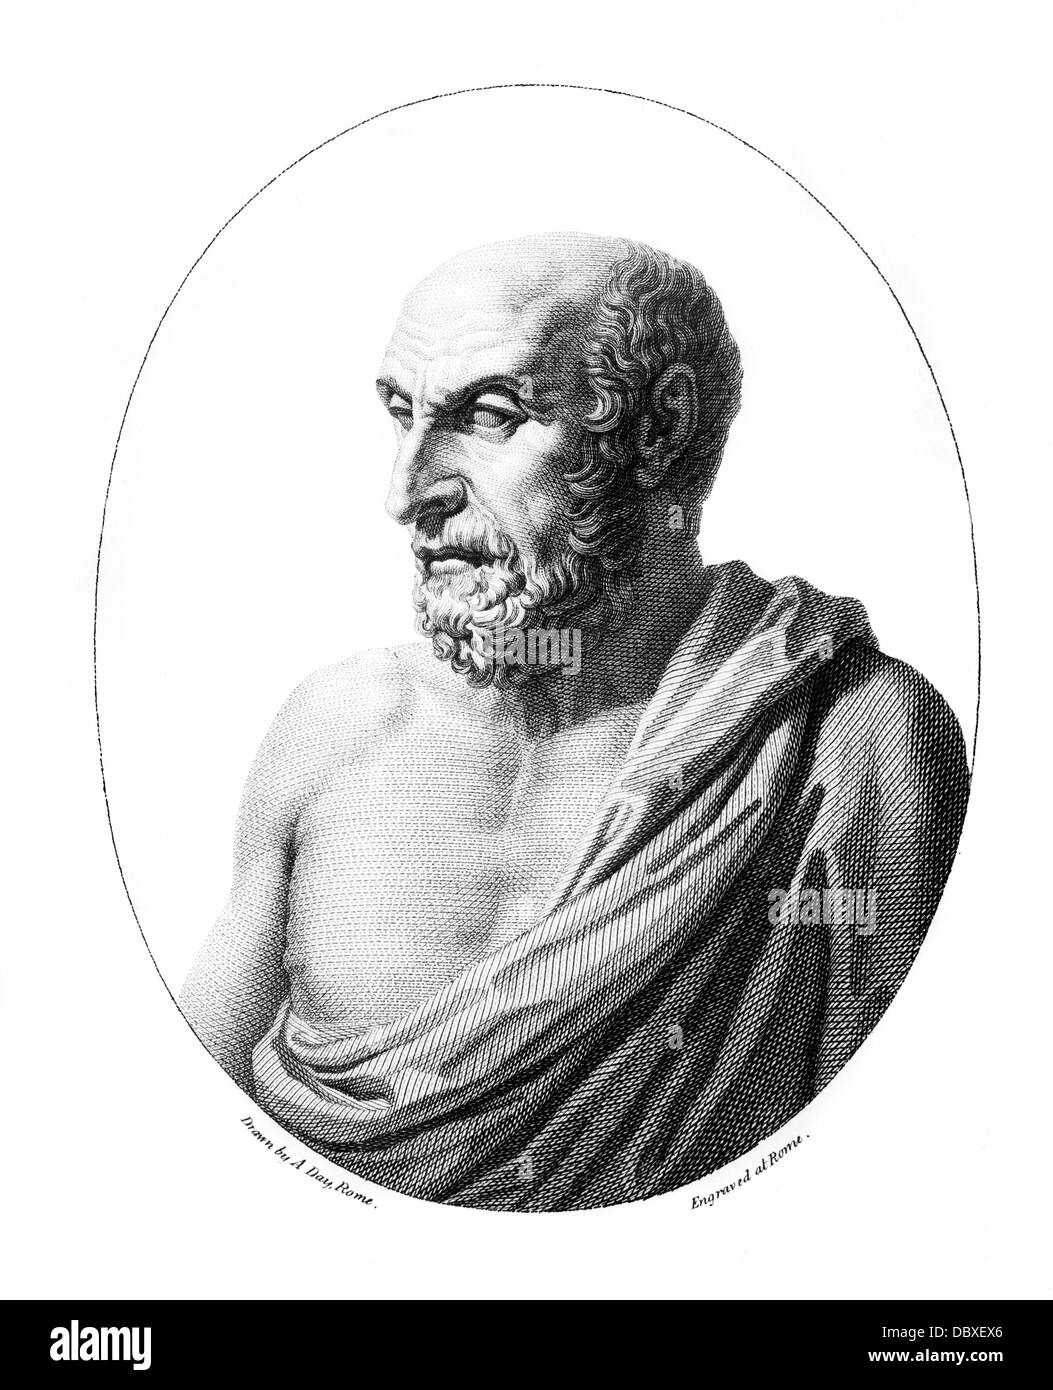 DEMOCRITUS GREEK PHILOSOPHER 400 BC ADVANCED ATOMIC THEORY ENGRAVING FROM A BUST IN THE VATICAN - Stock Image